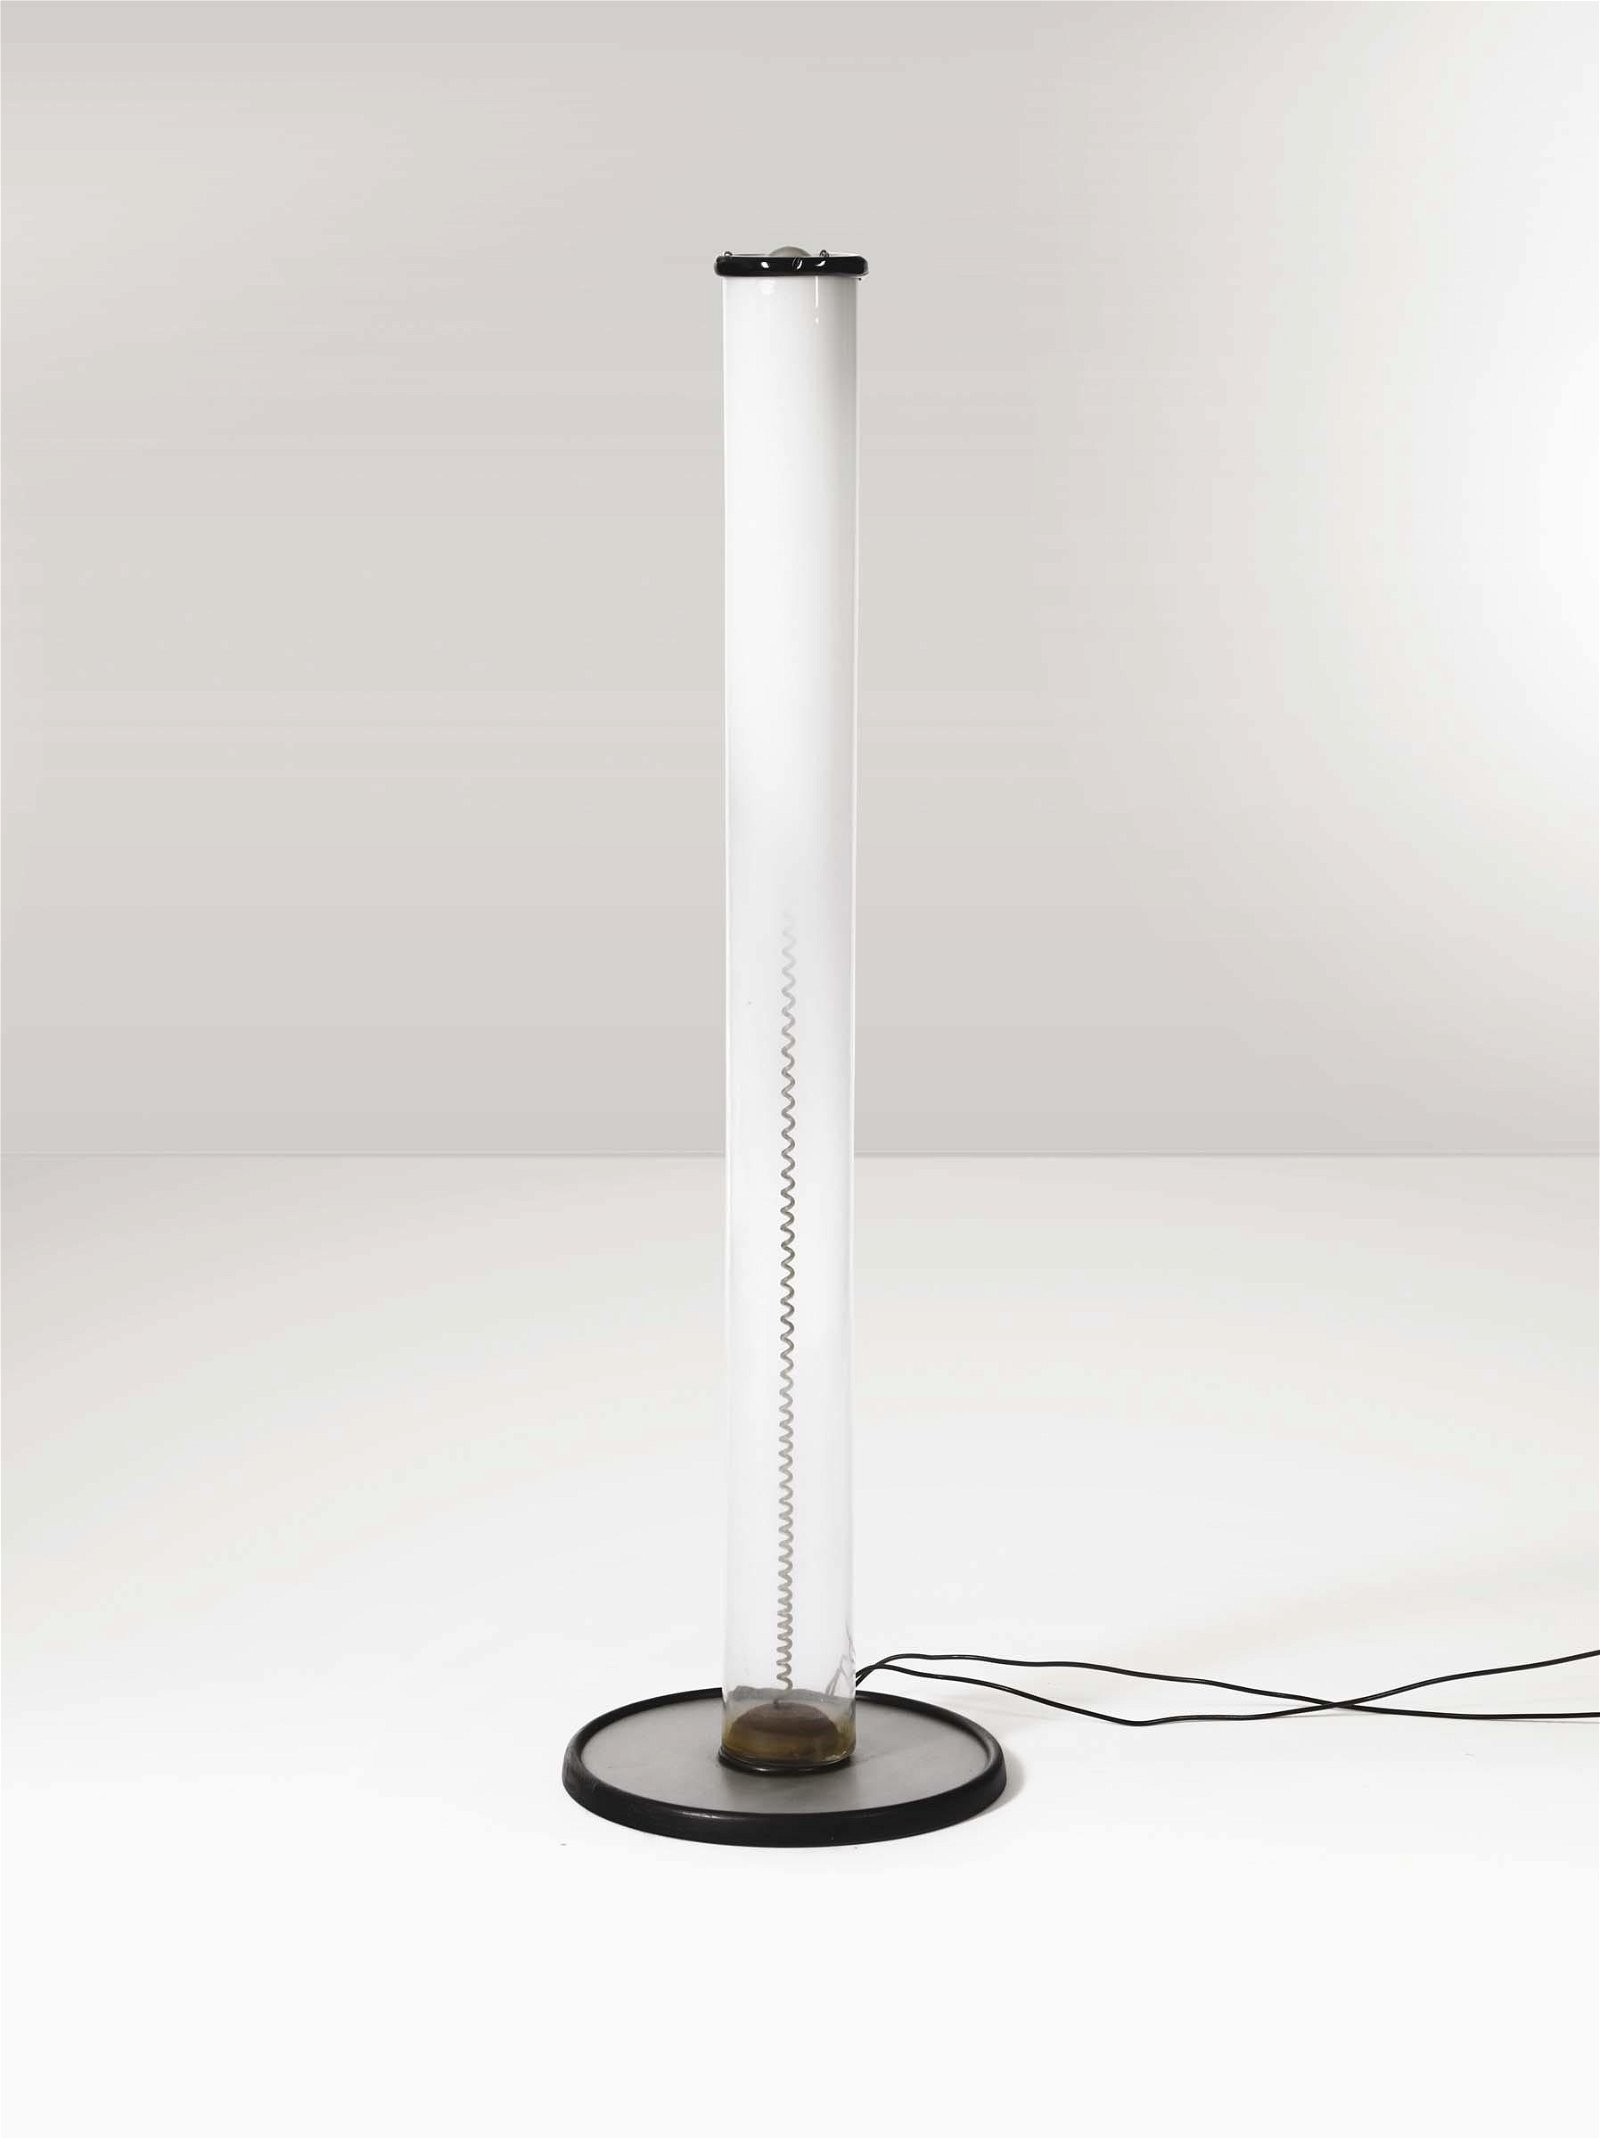 Giusto Toso, a floor lamp with a metal structure and